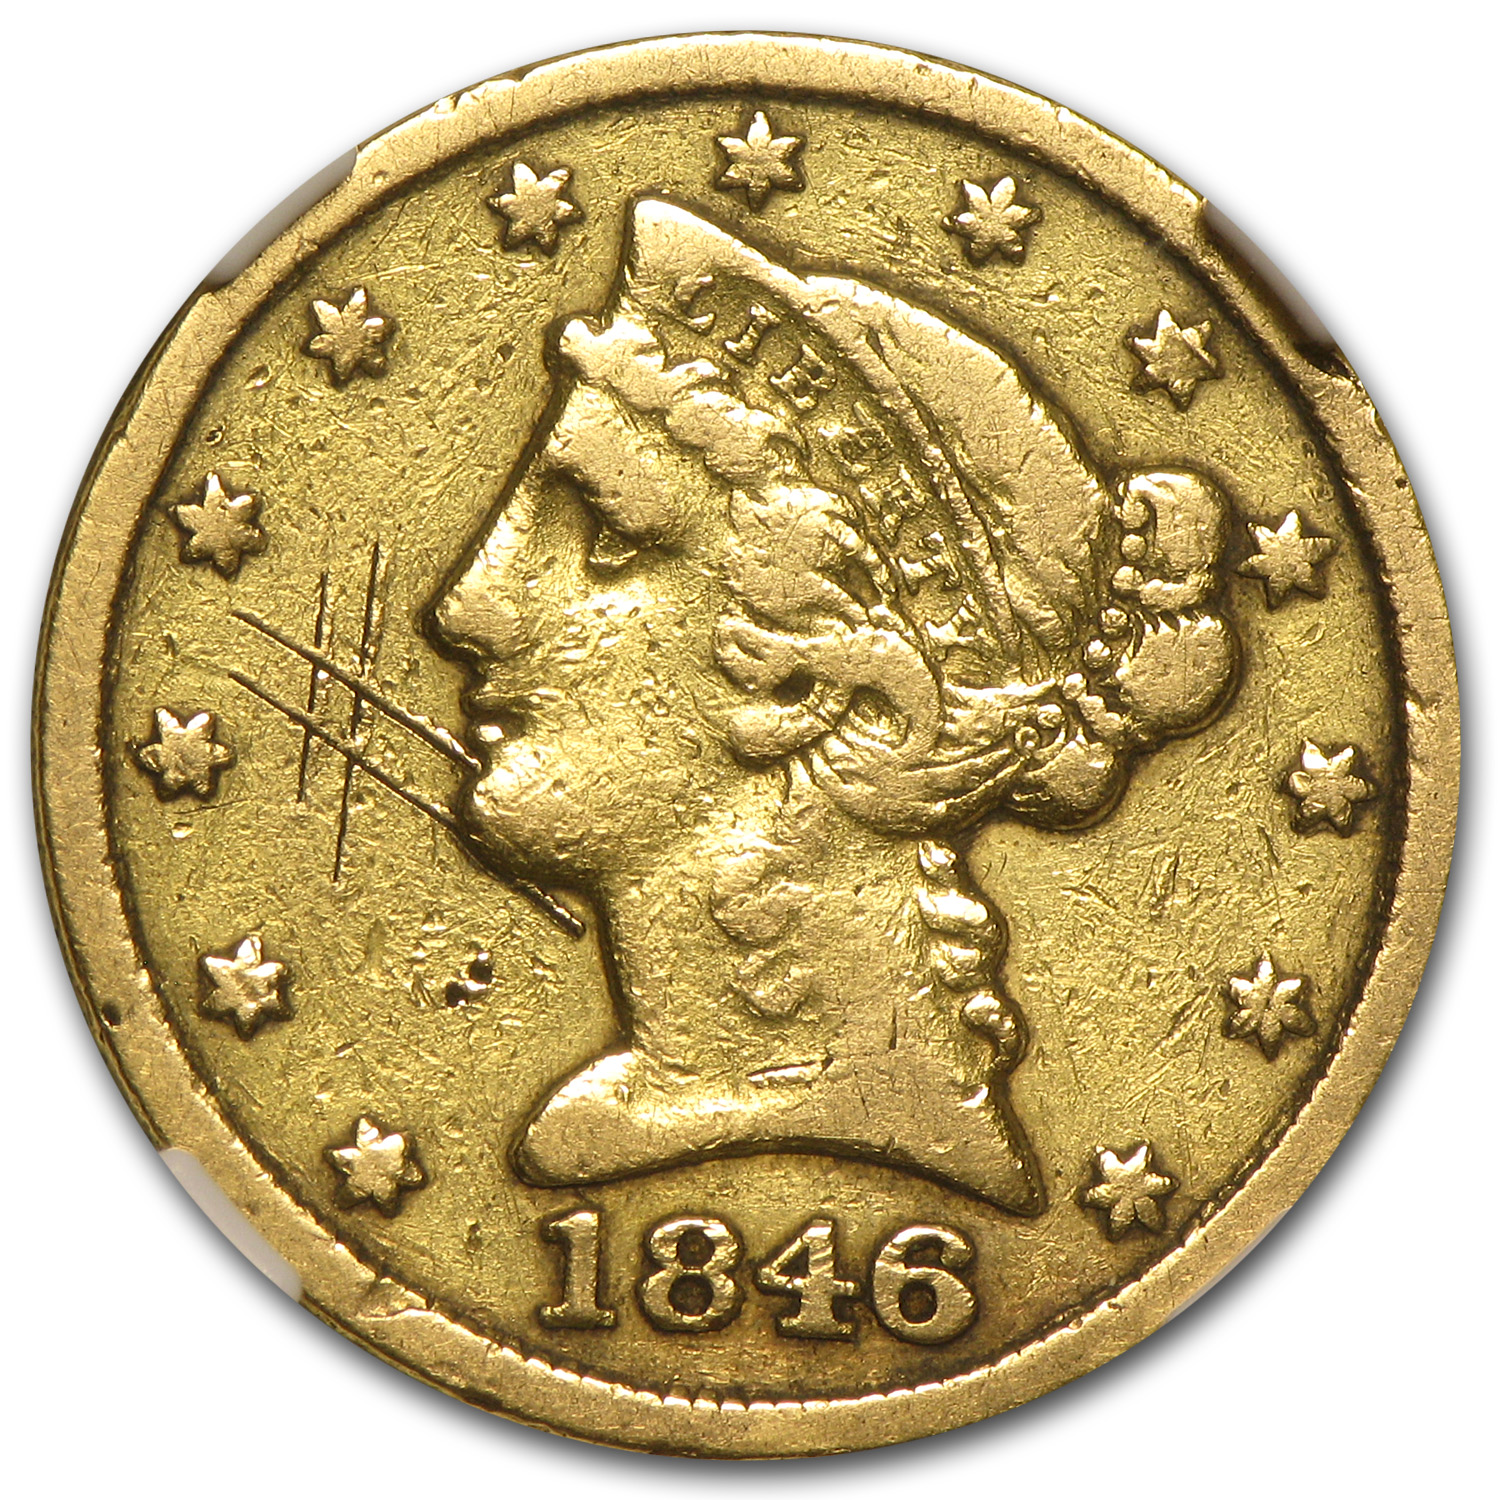 1846-C $5 Liberty Gold Half Eagle VF Details NGC (Graffiti)